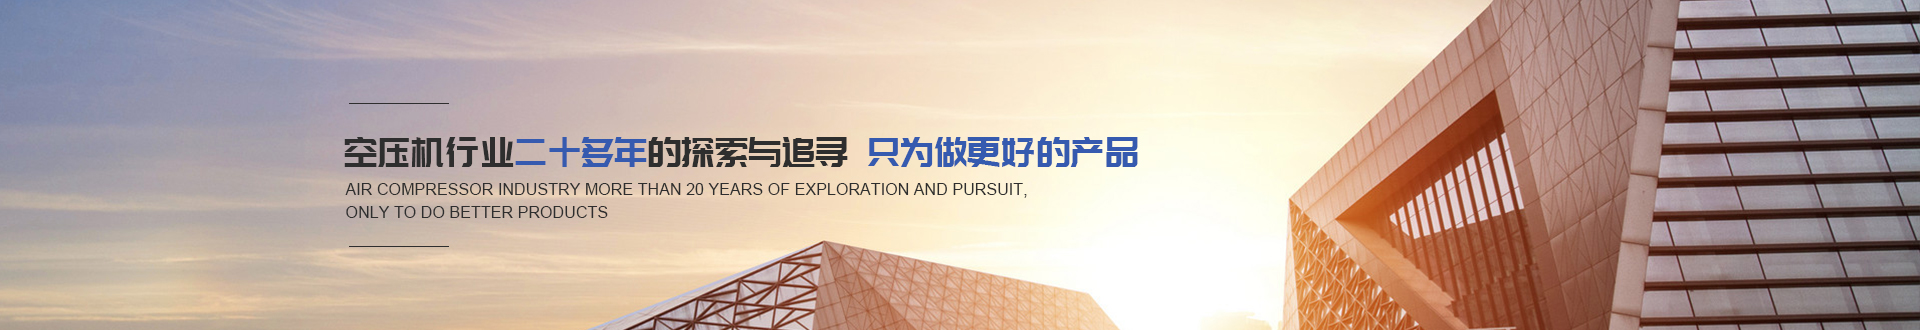 /data/upload/202008/20200822114950_360.jpg